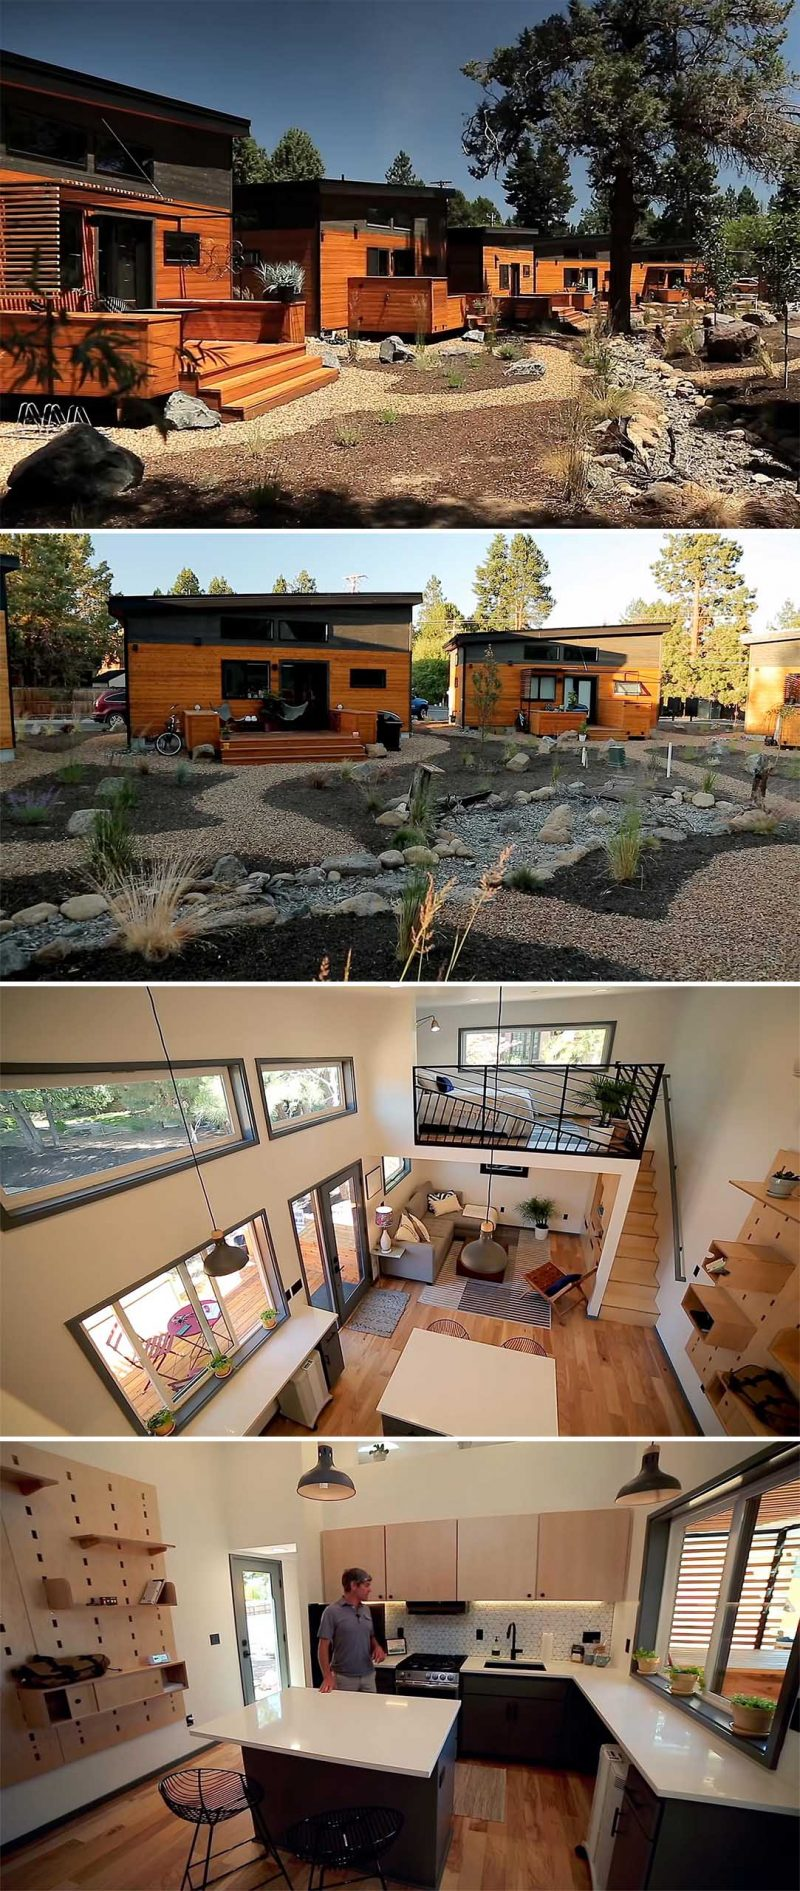 Jesse Russell, owner and creator of Hiatus Homes, has designed a purpose-built village with 22 tiny homes, located in Bend, Oregon. Each tiny house features solar panels, storage for bikes and outdoor gear, a small pergola, an open plan living room and kitchen, and multiple loft areas.